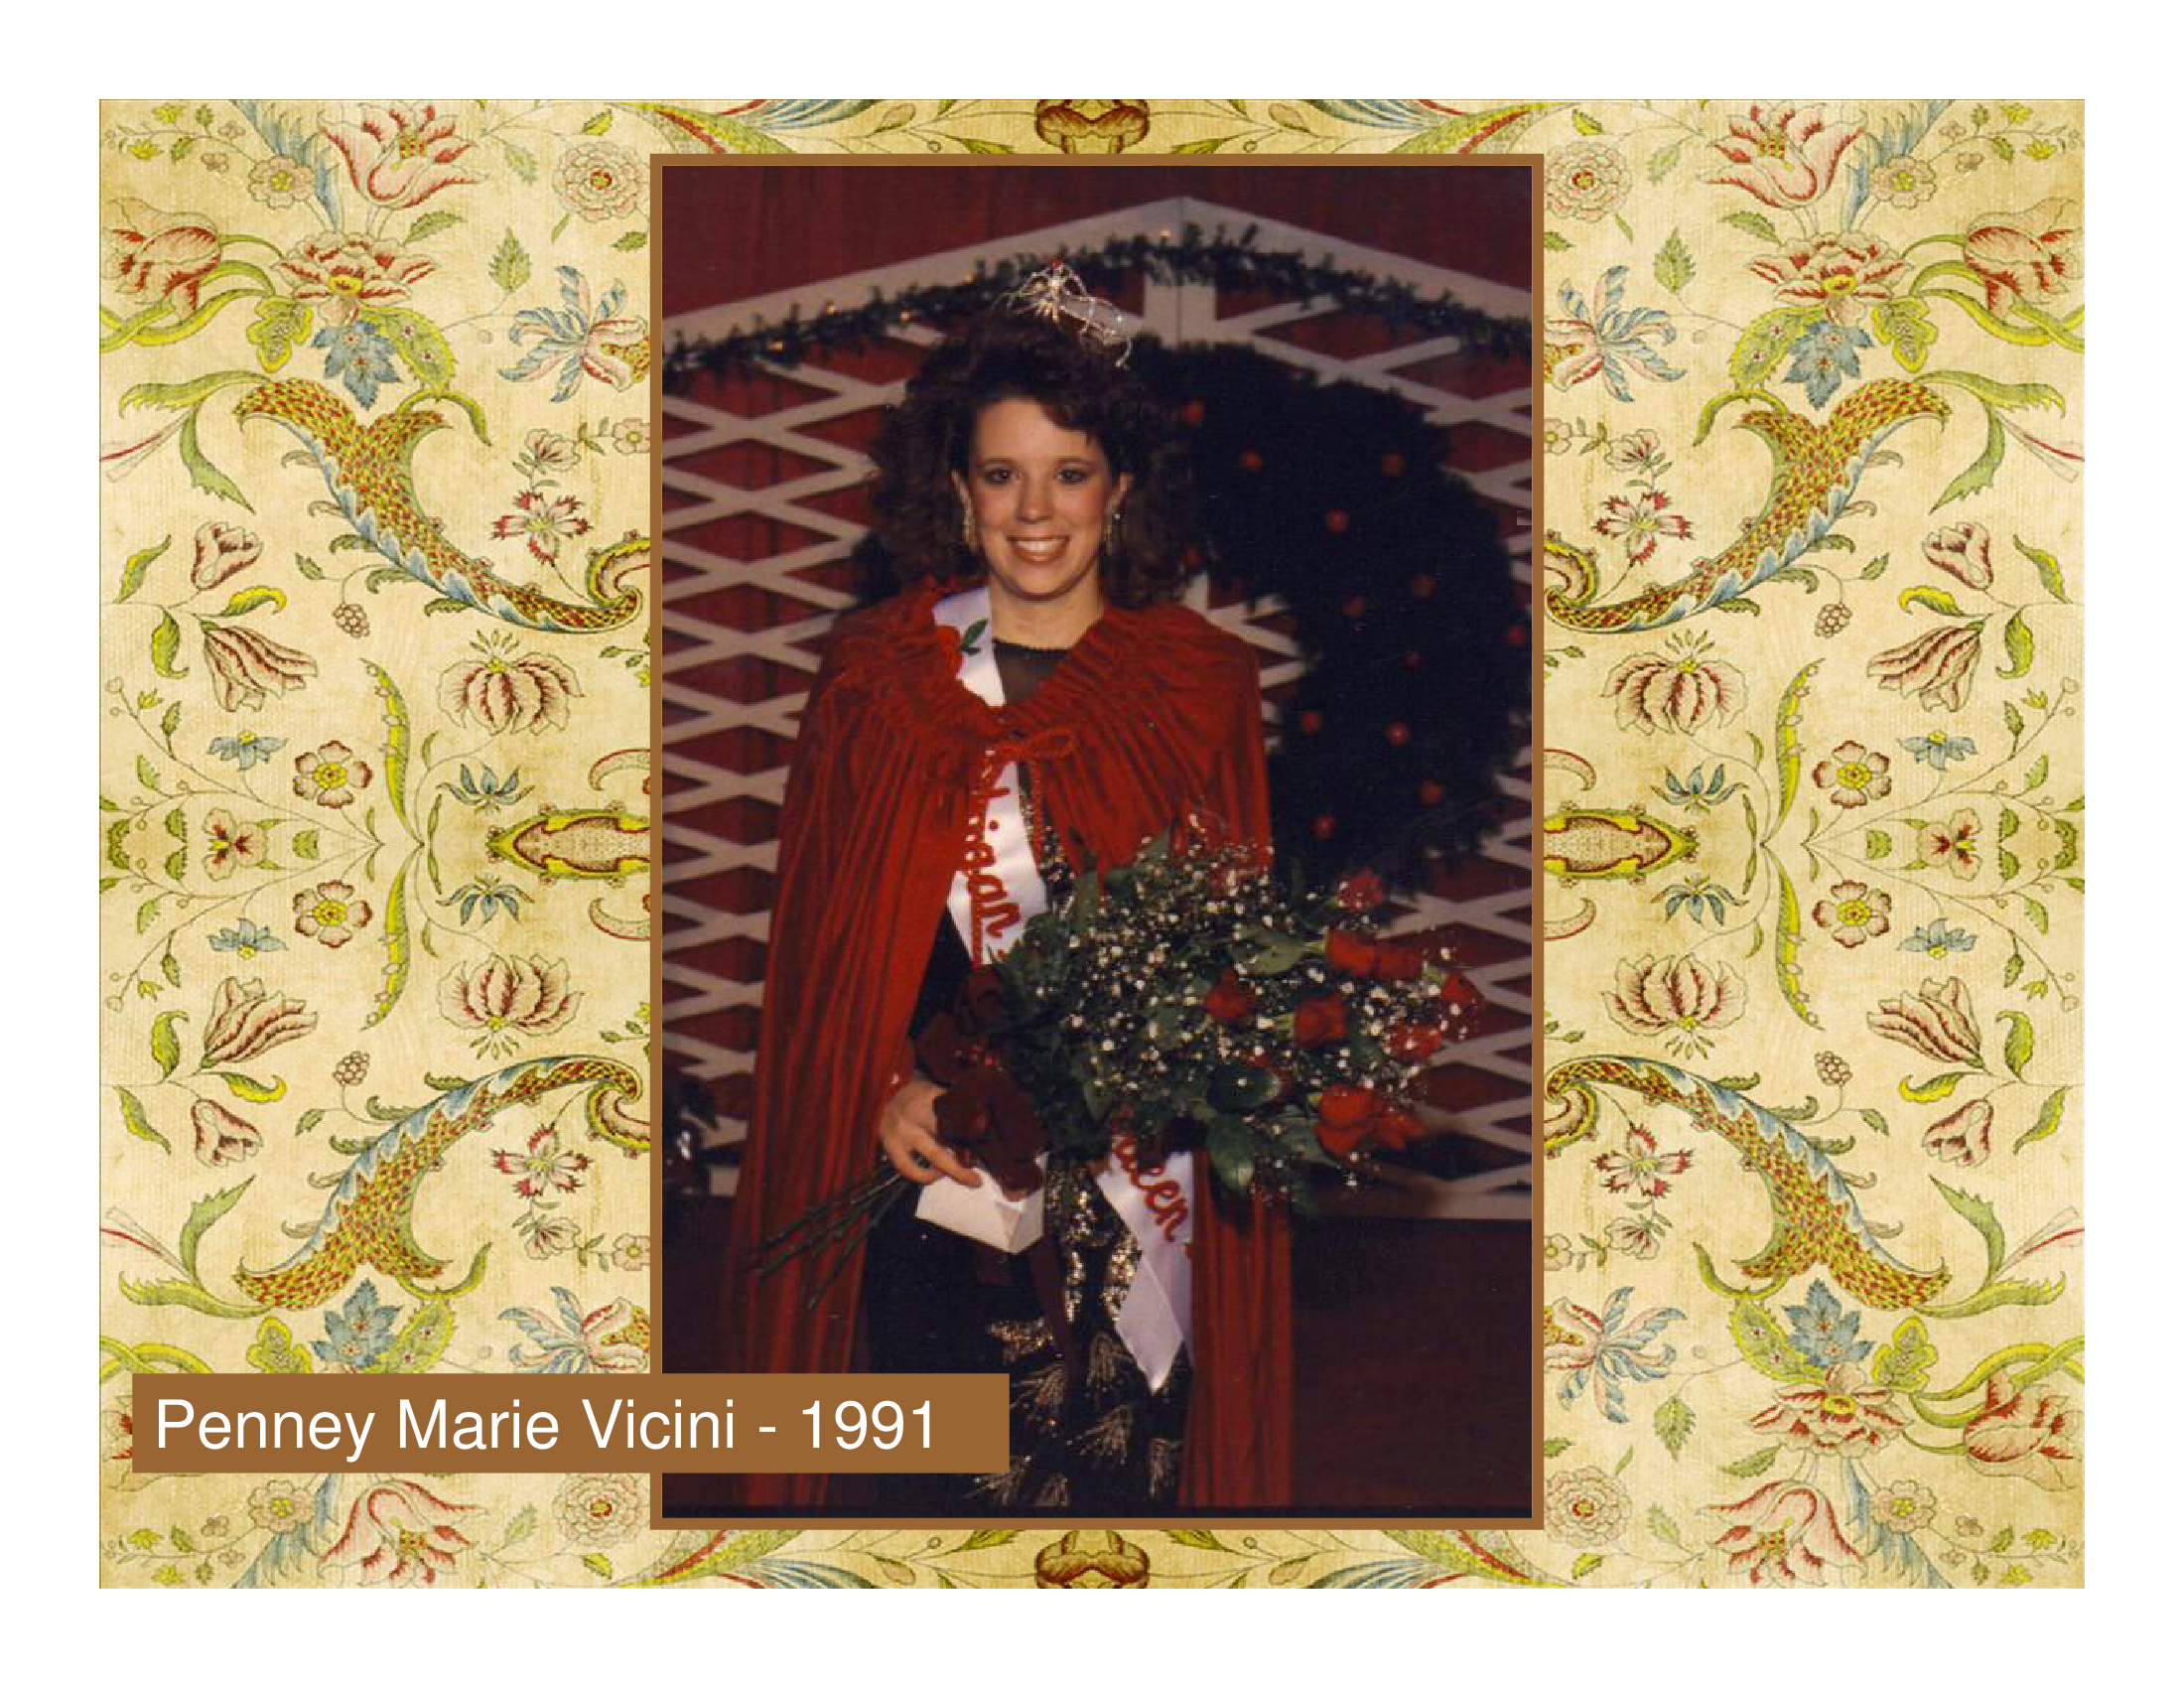 Penney Marie Vicini - 1991